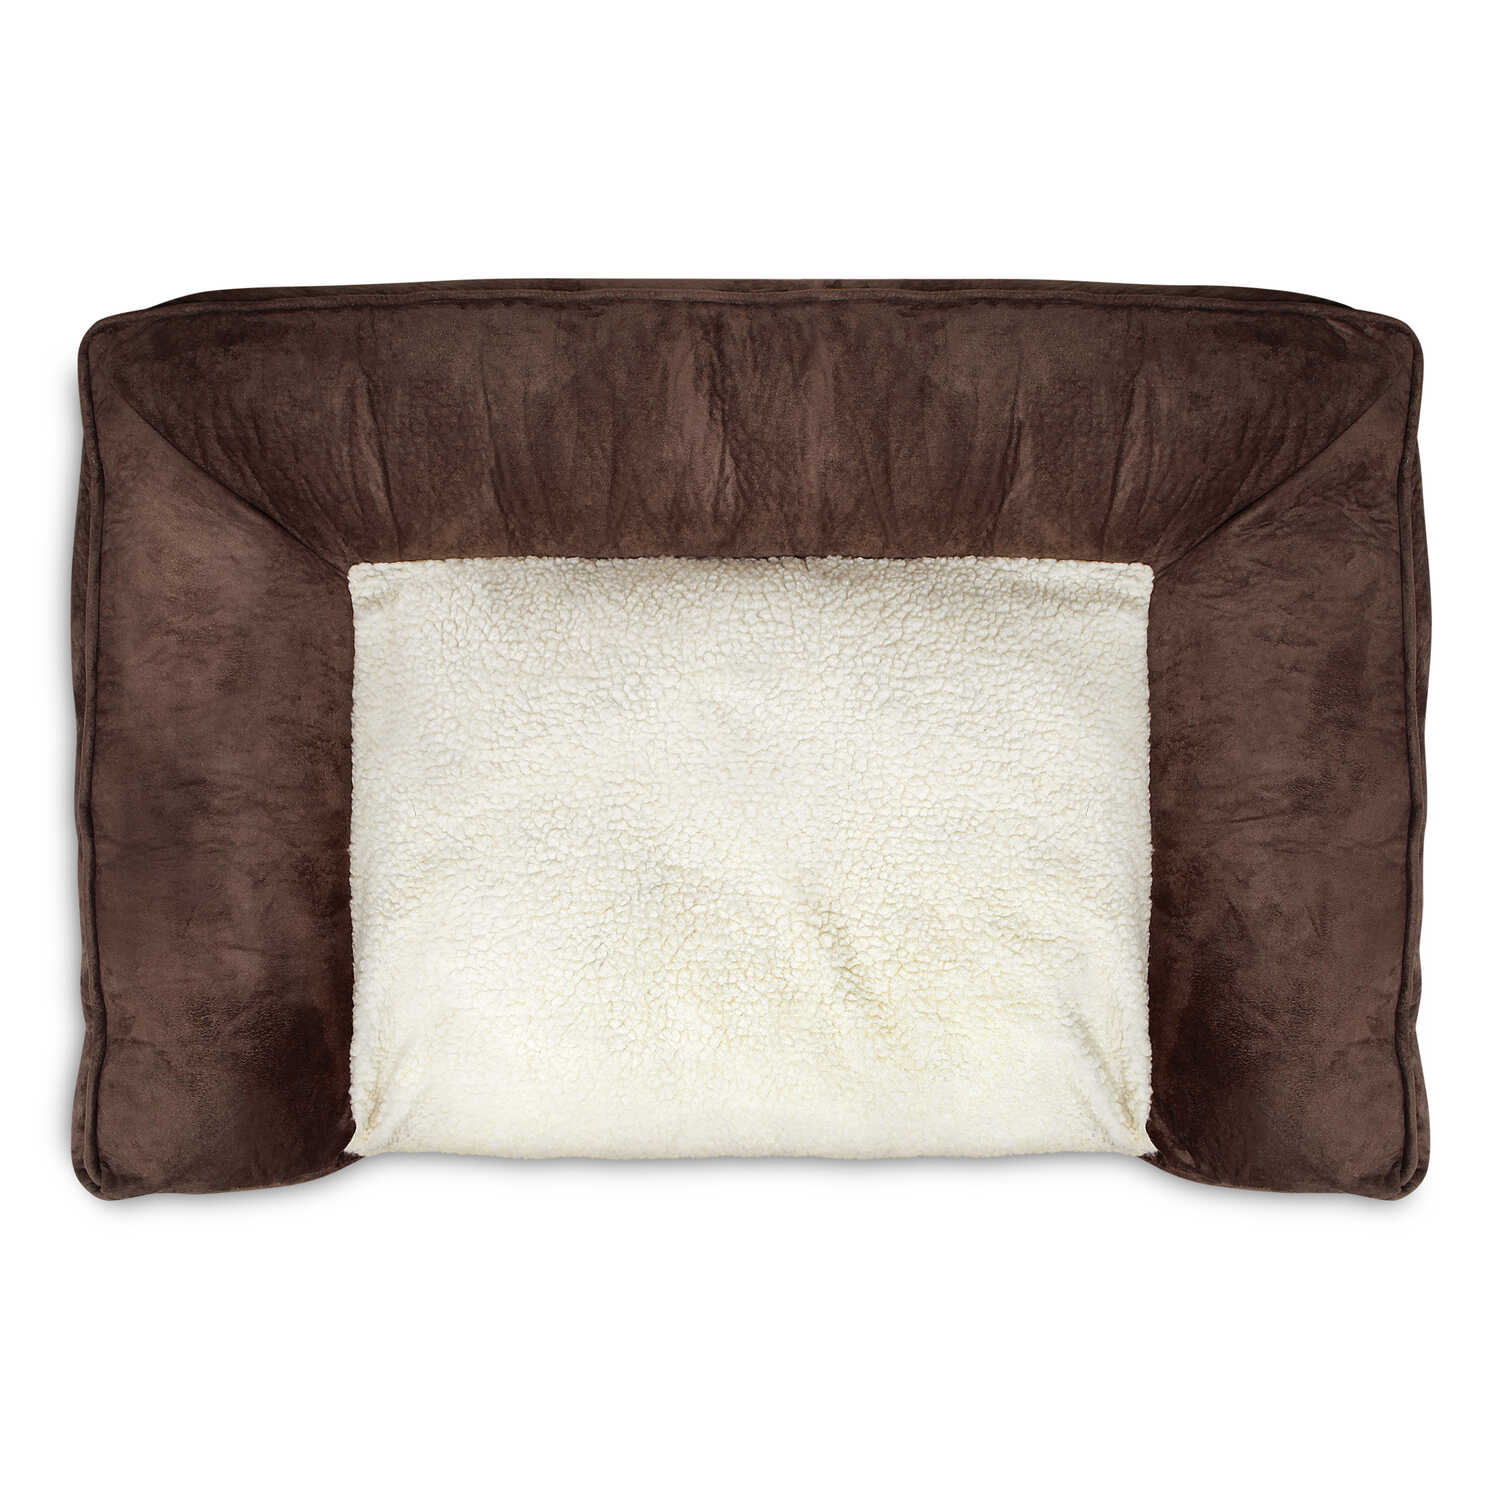 Animal Planet  Brown  Polyester  Rectangle  Pet Bed  8 in. H x 40 in. W x 27 in. L